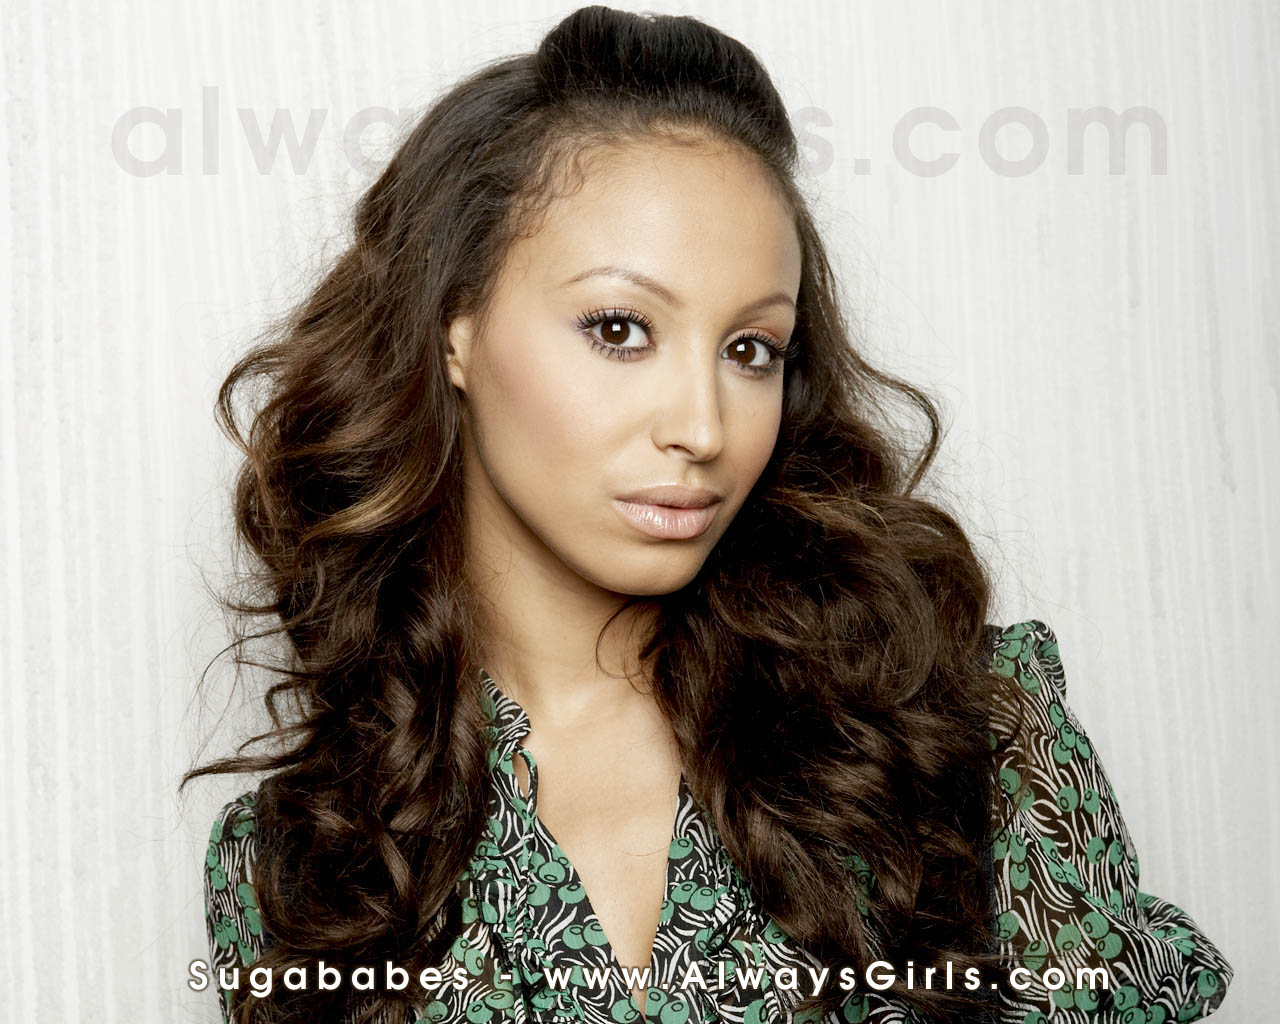 amelle berrabah sugababes wallpaper 23747517 fanpop